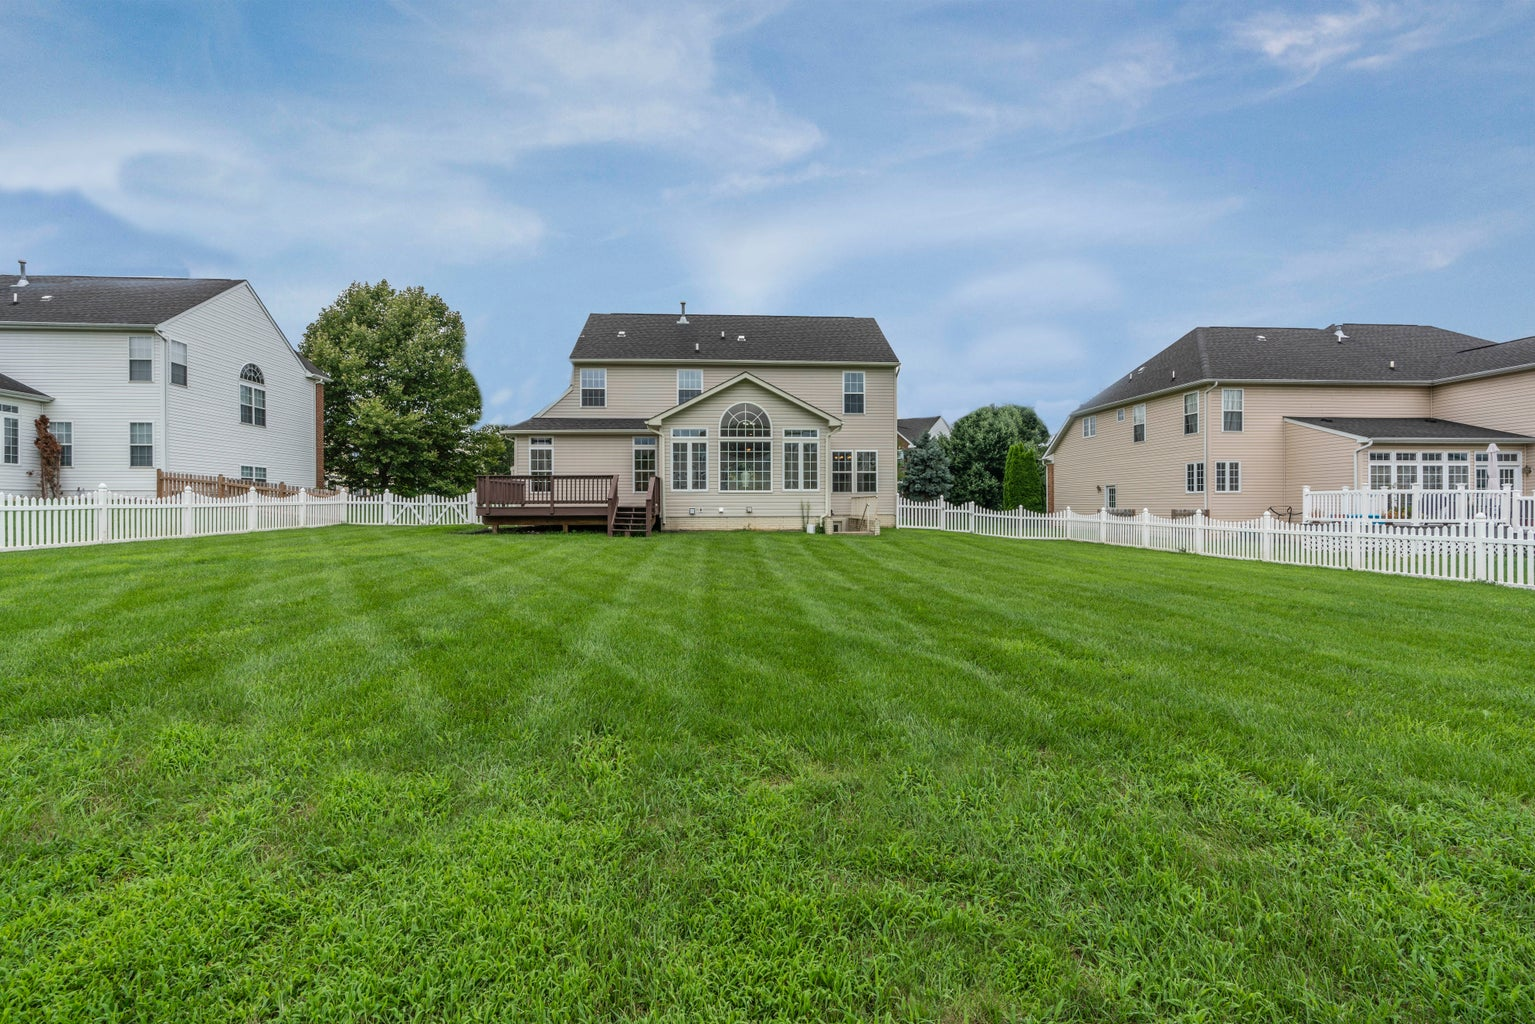 Lawn with house in back